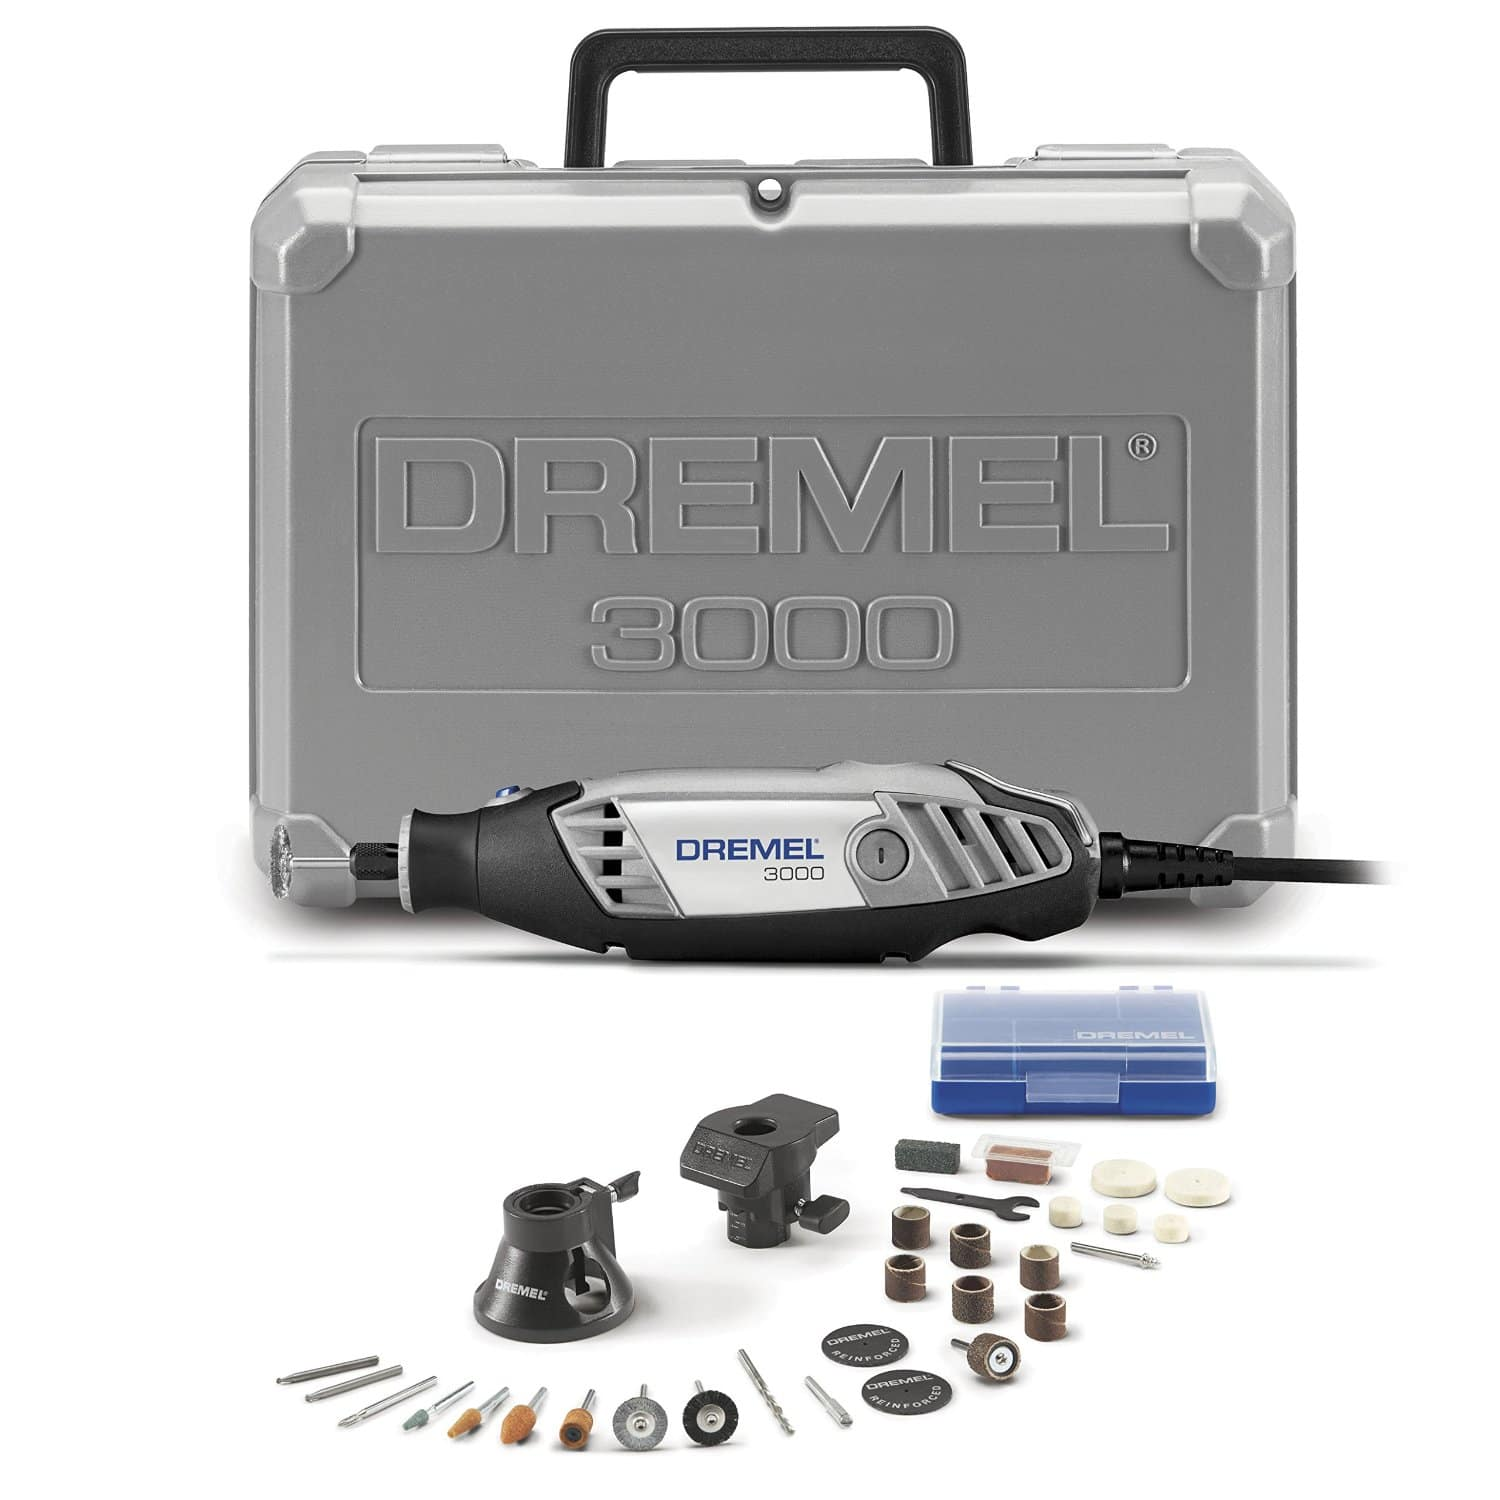 Dremel 3000-2/28 Rotary Tool w/ Sanding/Grinding Attachment & 28 Accessories Kit $49 + Free Shipping